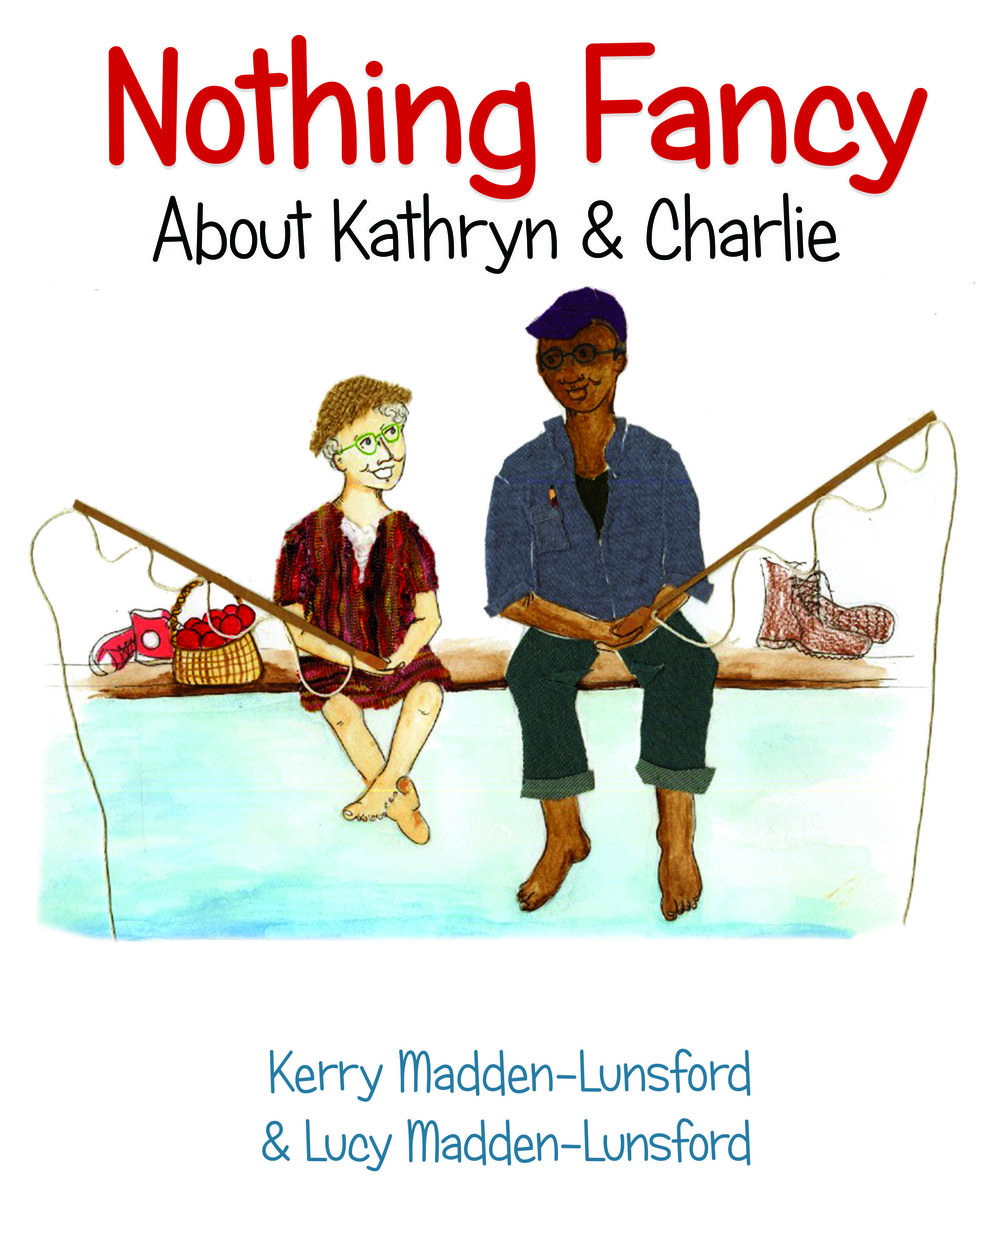 Awards | Reviews | NOminations - A true story about the unlikely friendship of Alabama storyteller, Kathryn Tucker Windham and Alabama artist, Charlie Lucas. Illustrated by Kerry's daughter, Lucy.April 2013